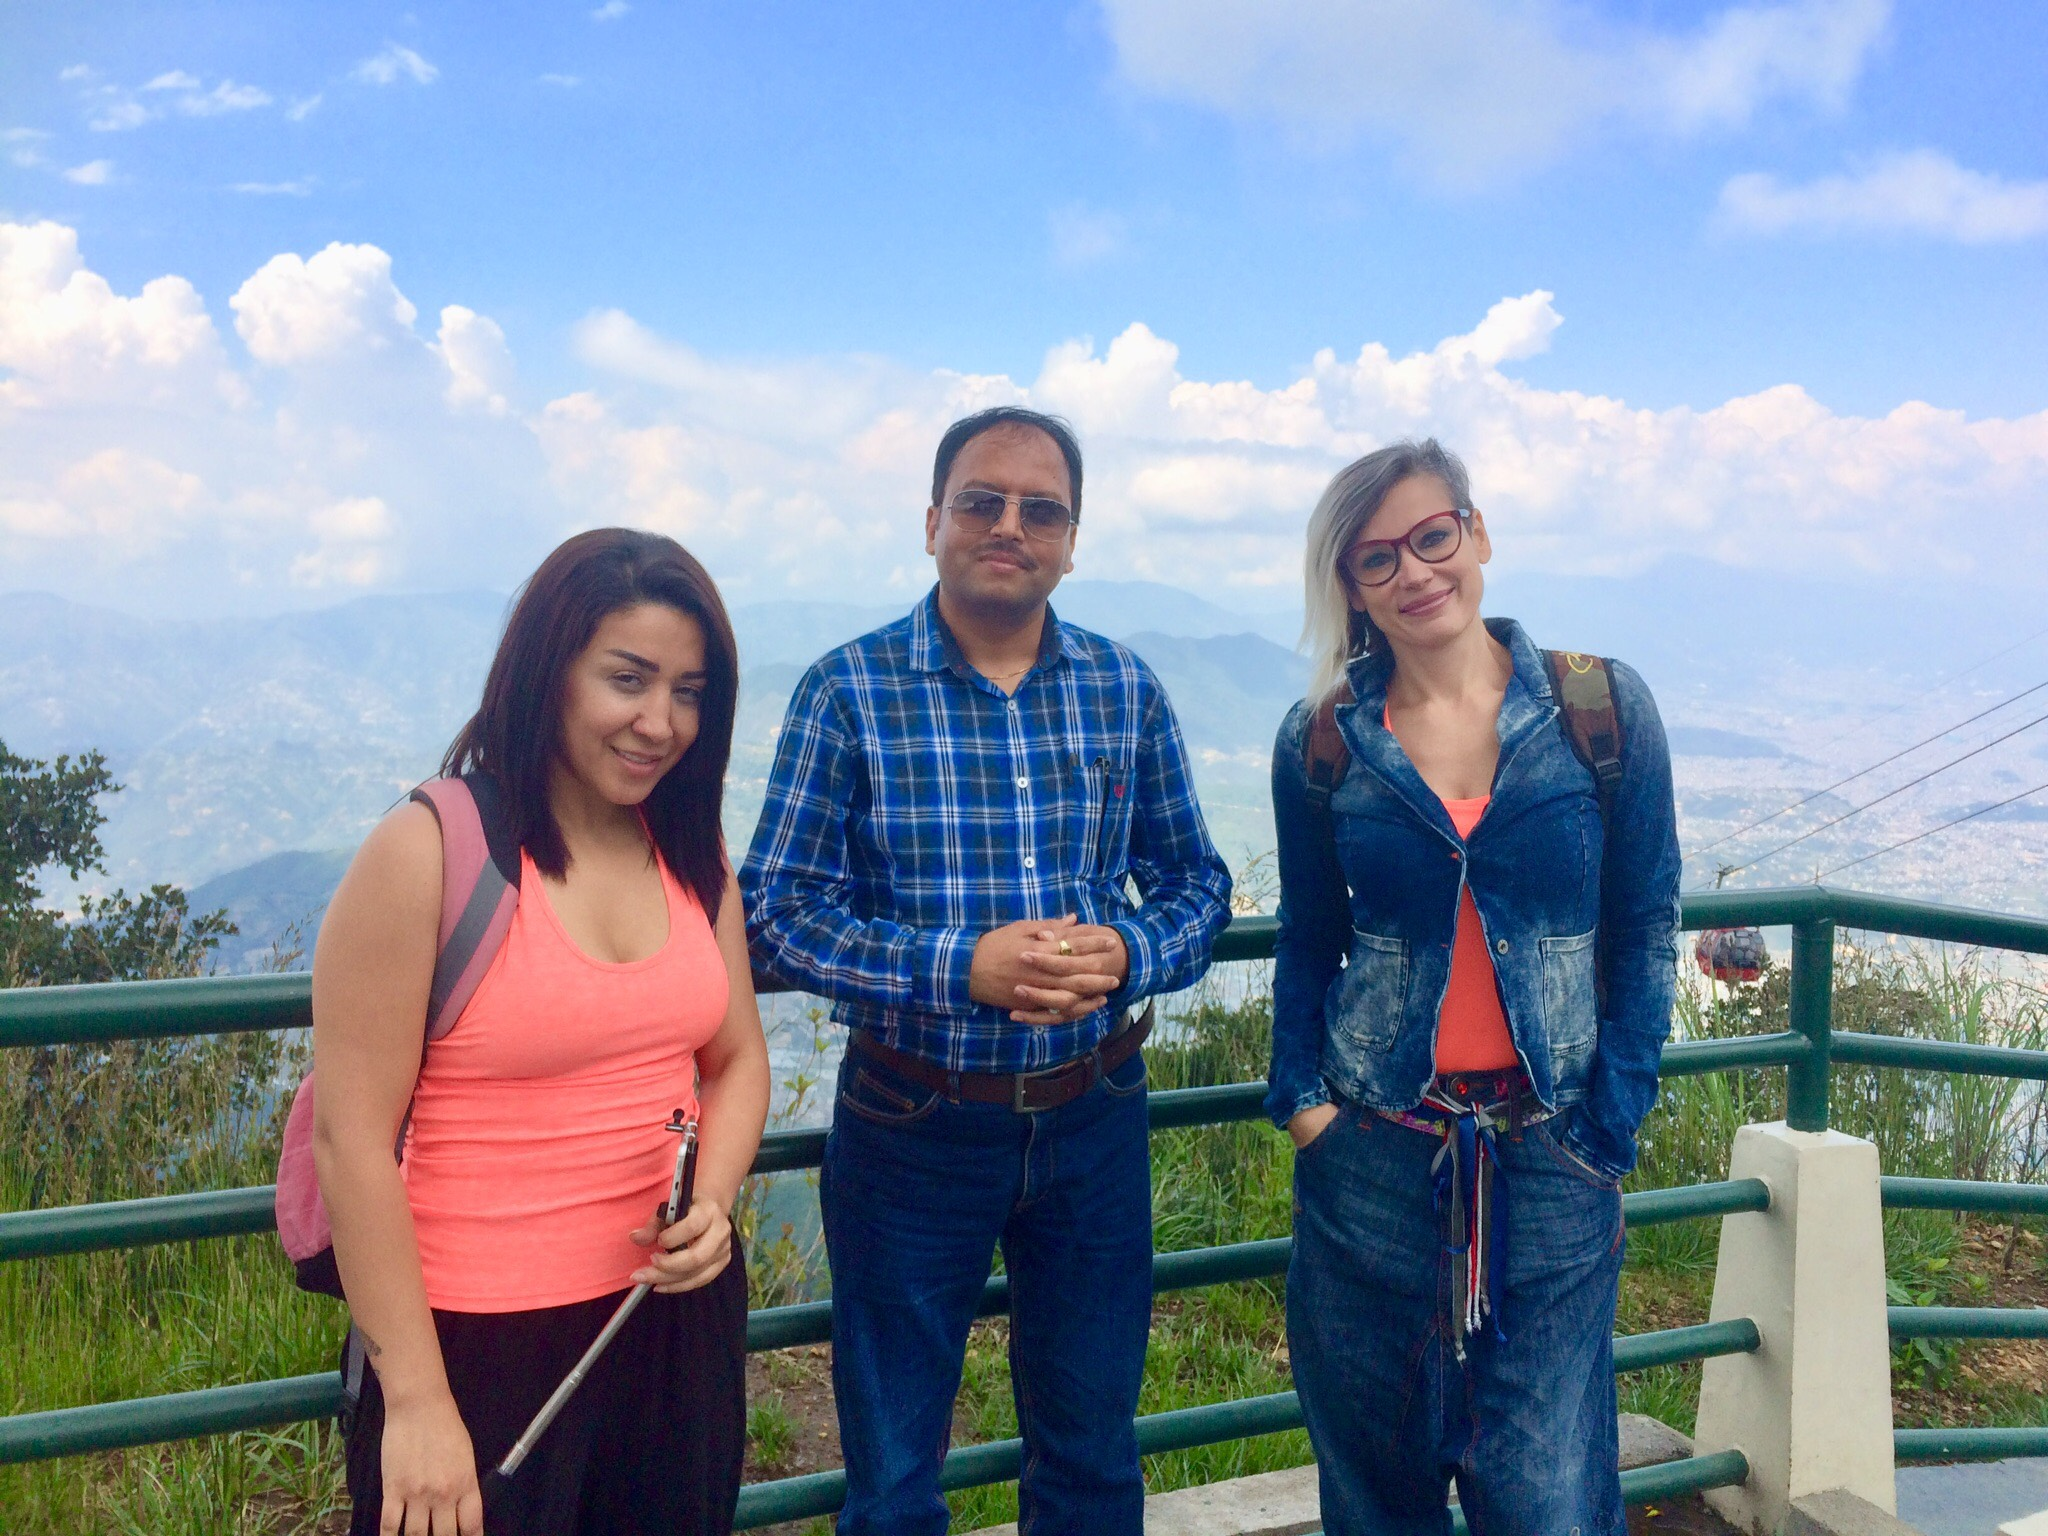 Chandragiri view with Guru and Student